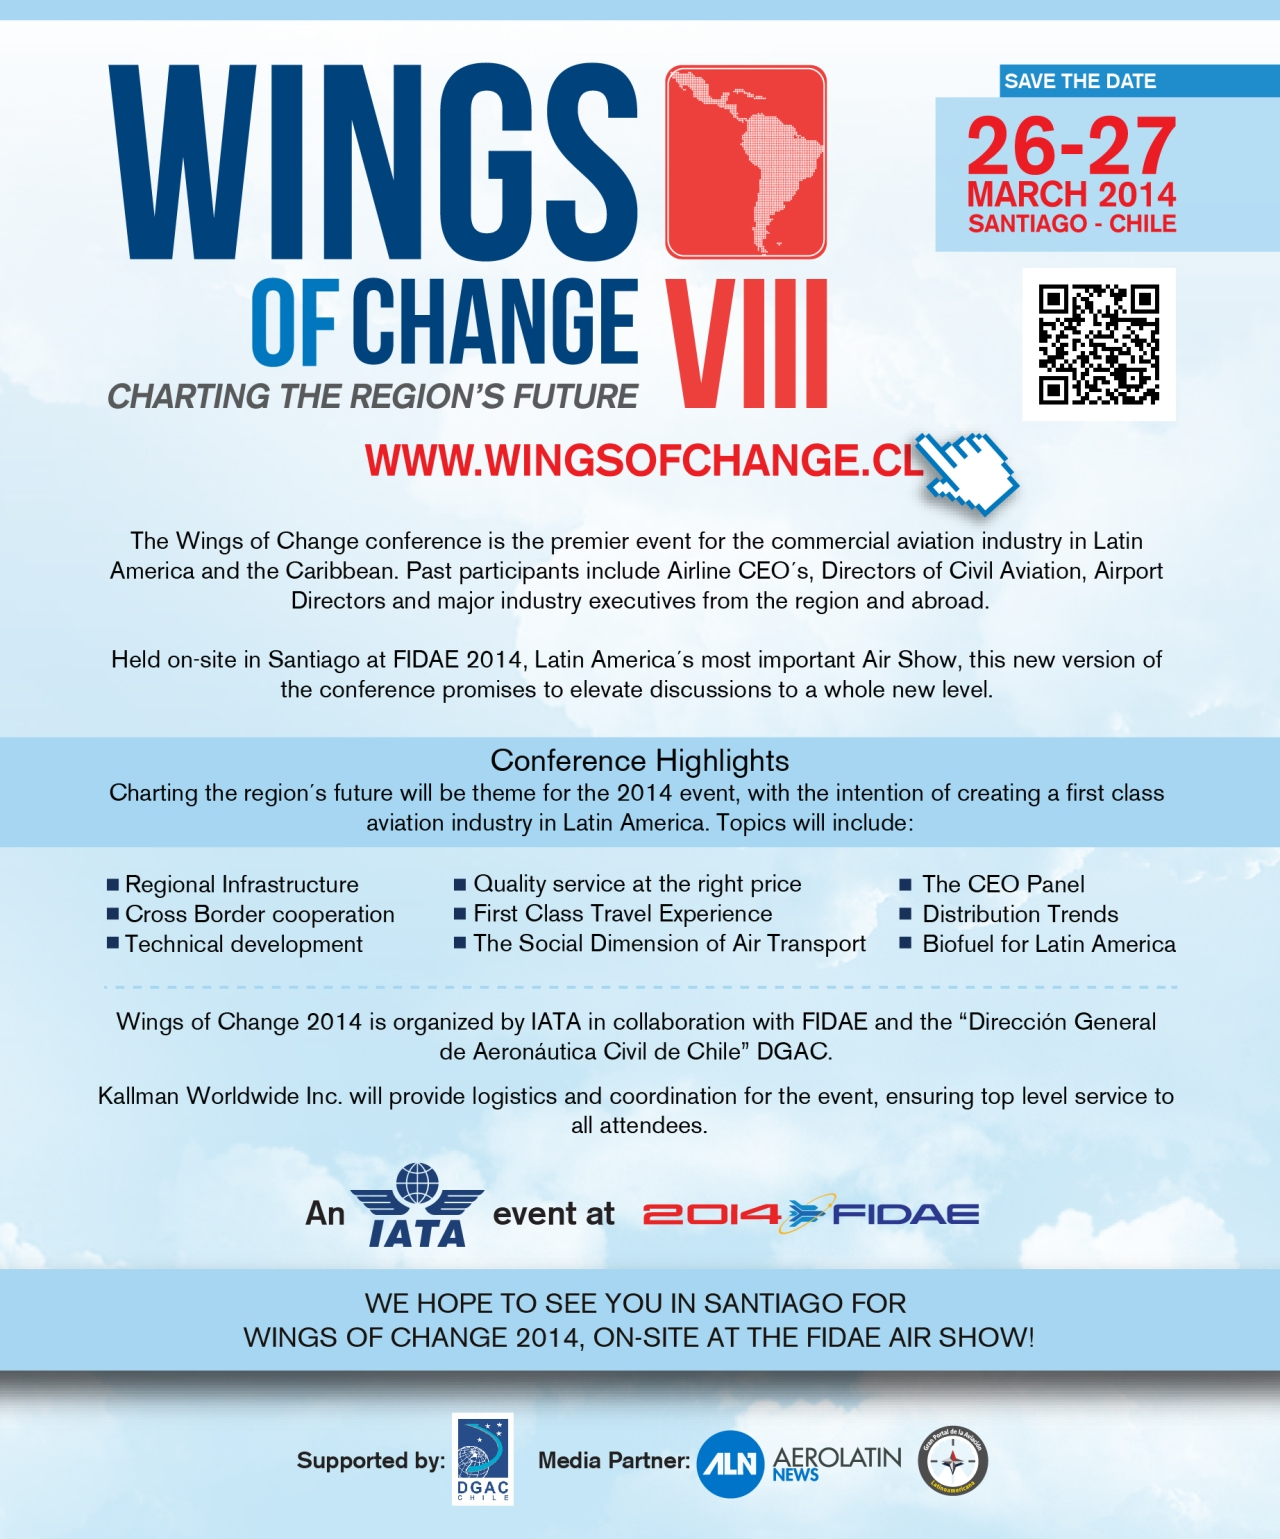 Wings of Change VIII